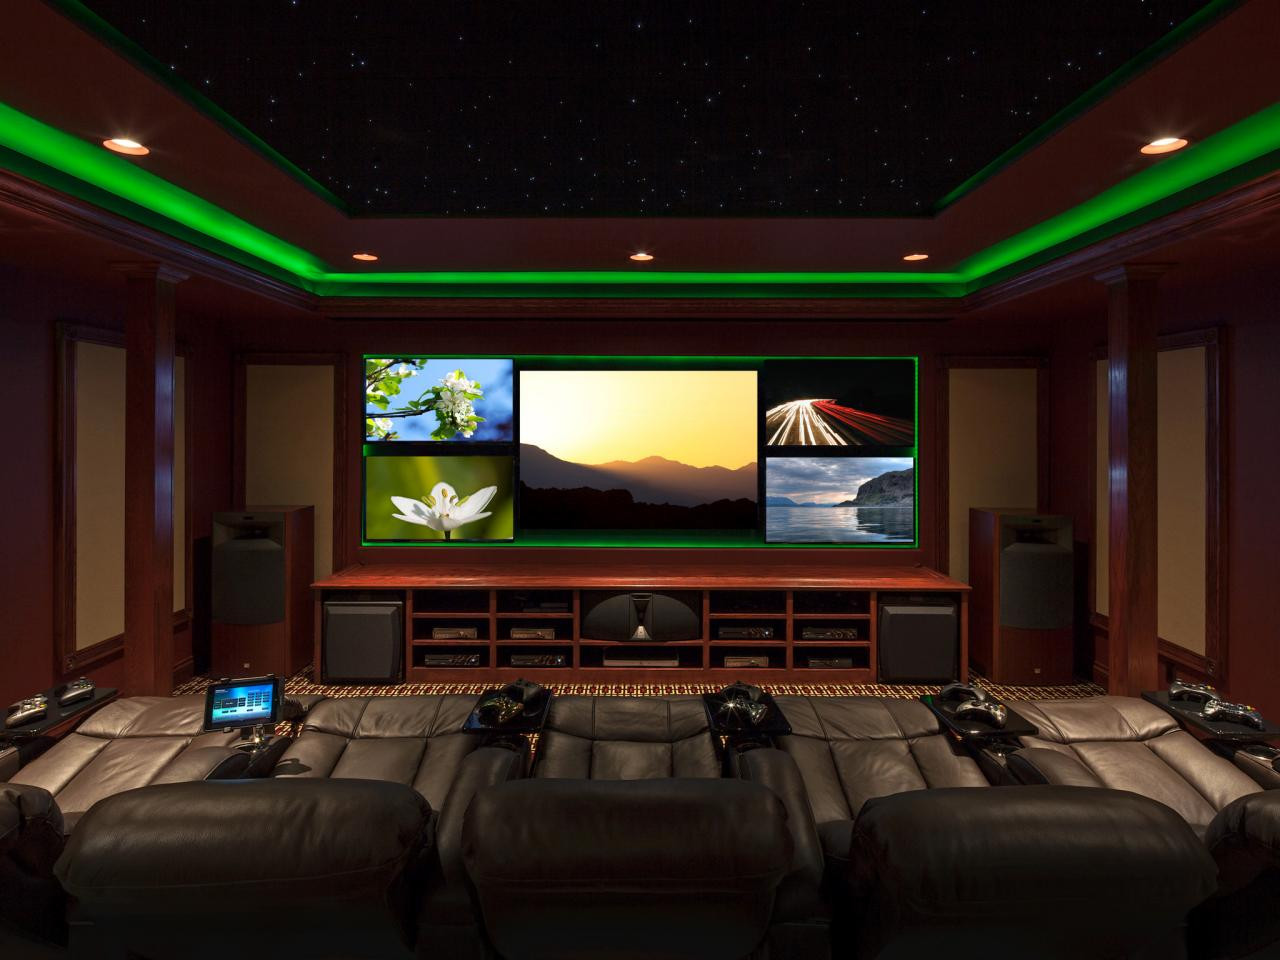 Best ideas about Game Room Lighting . Save or Pin 47 Epic Video Game Room Decoration Ideas for 2017 Now.